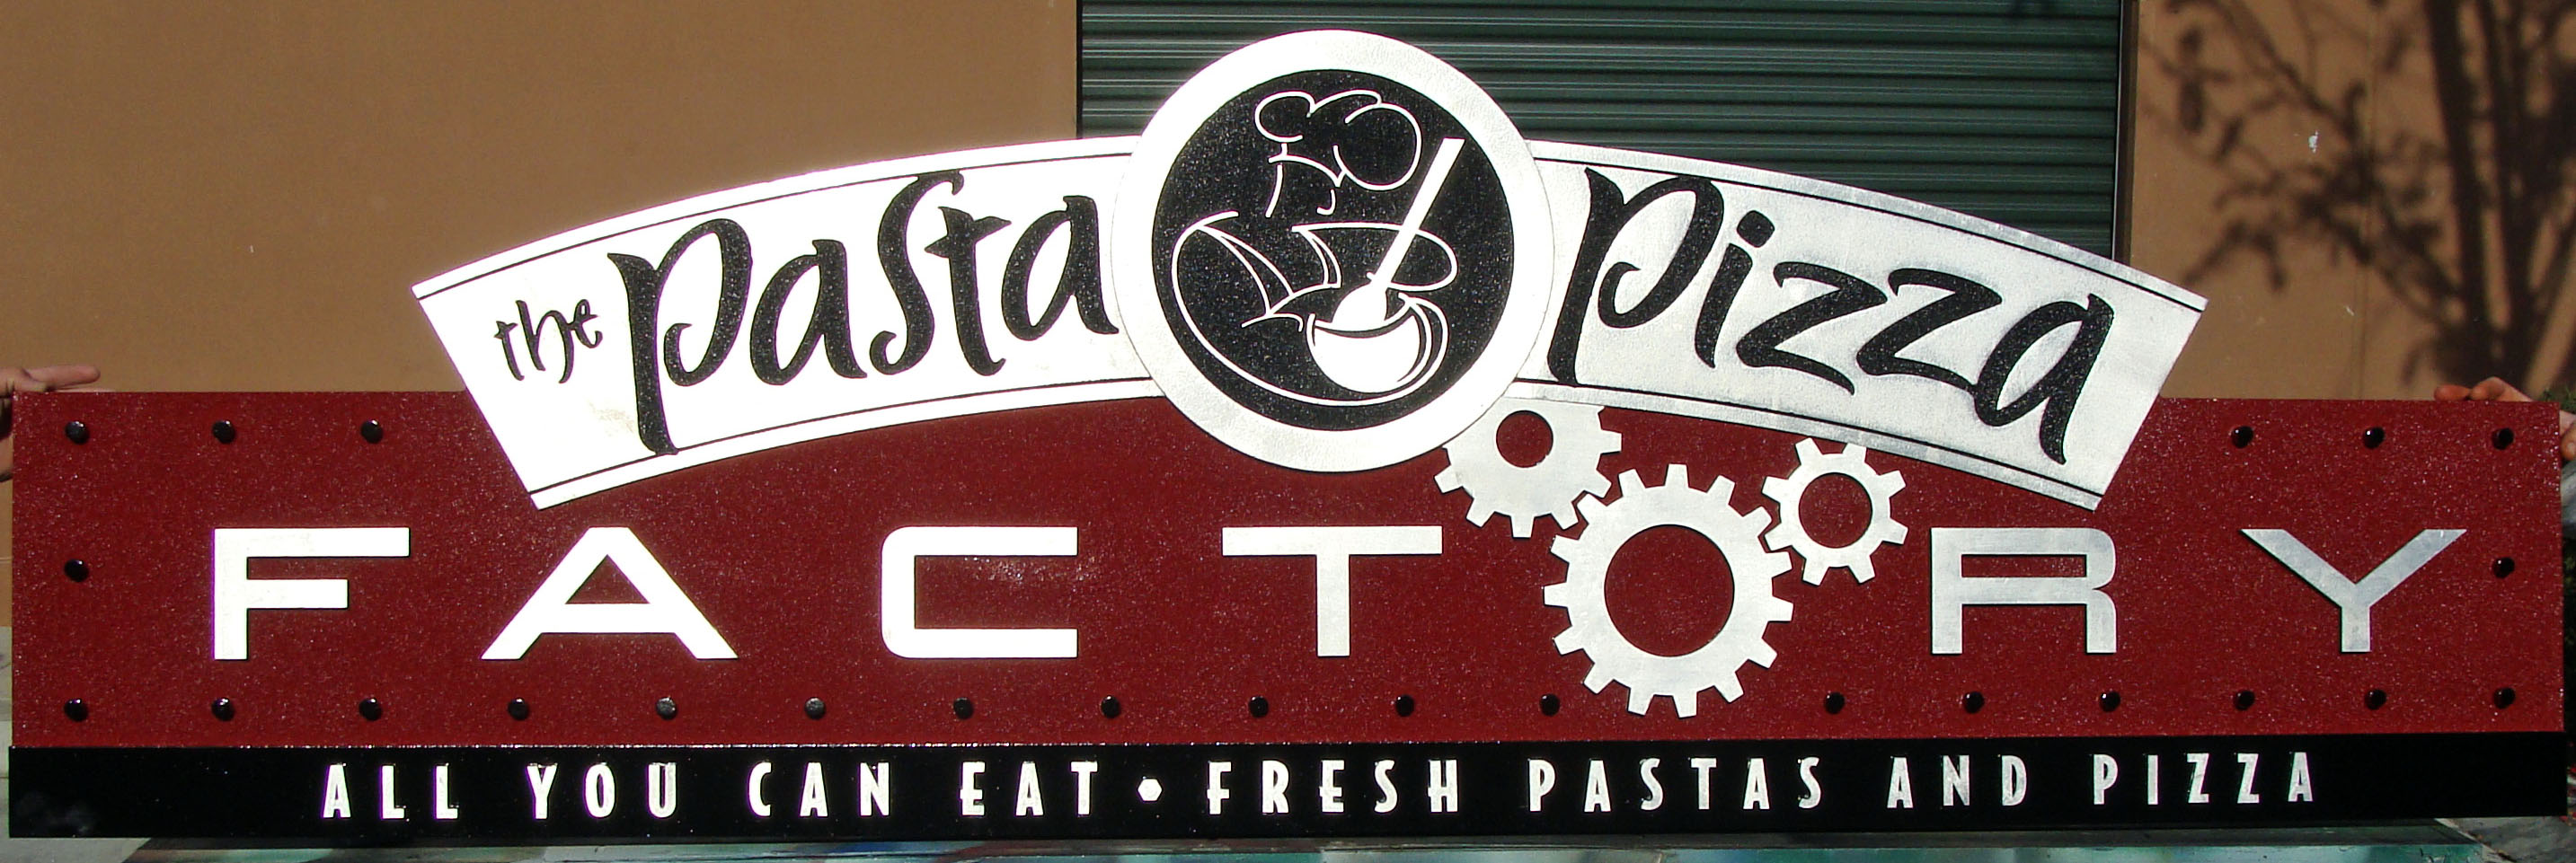 """Q25202 - Silver HDU Sign for """"Pasta Pizza Factory""""with Carving of Chef"""